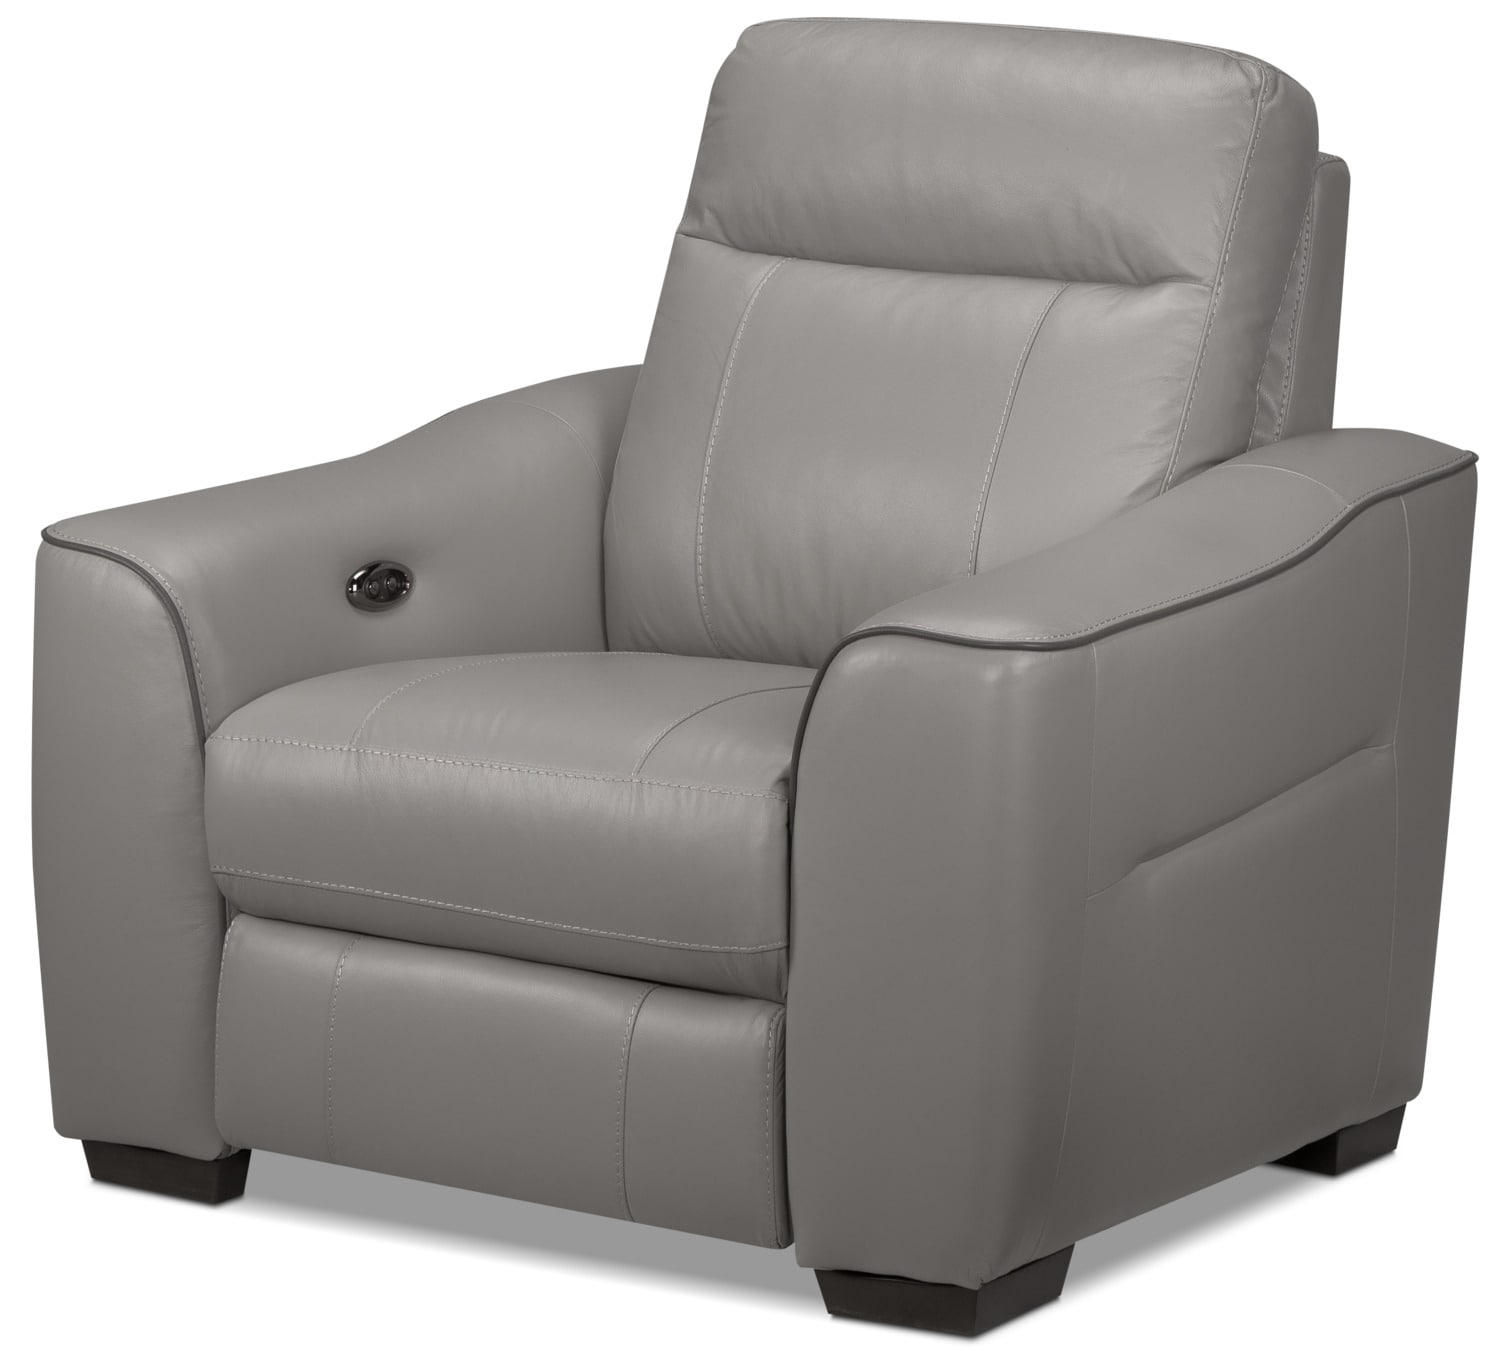 Bolton Power Recliner - Grey